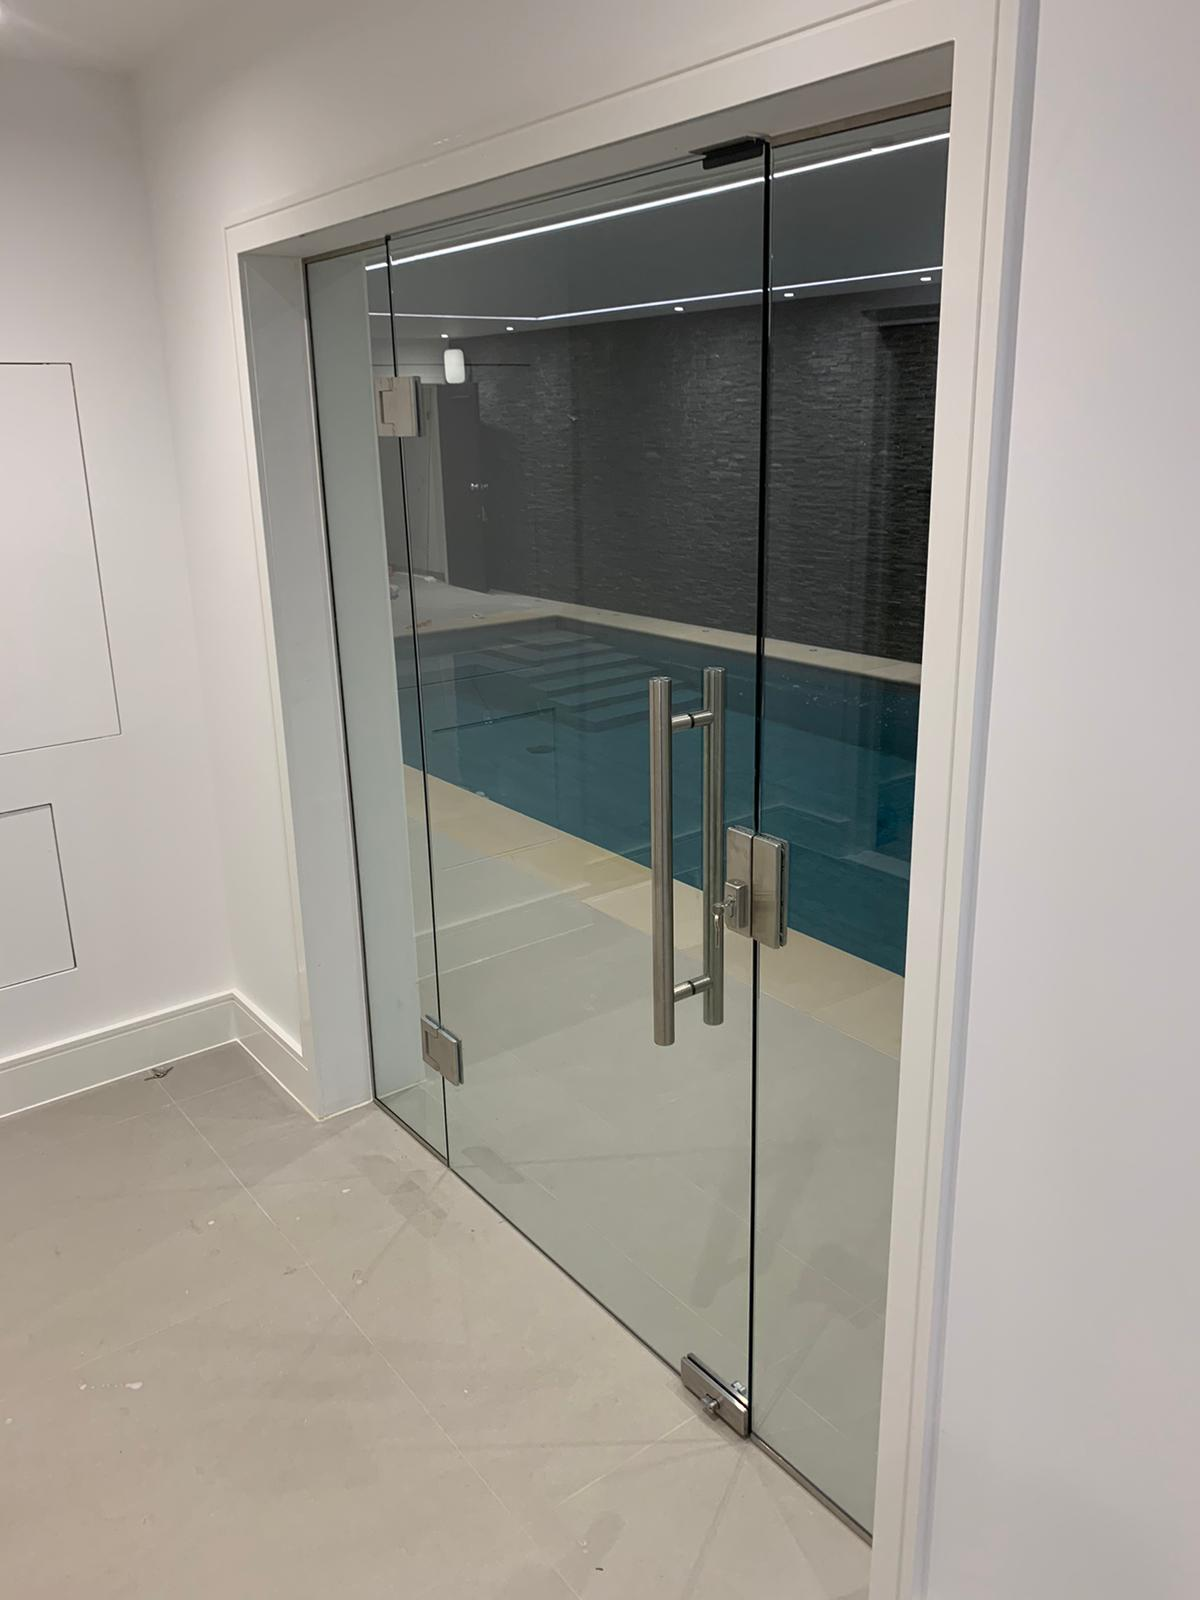 Swimming pool internal glass doors